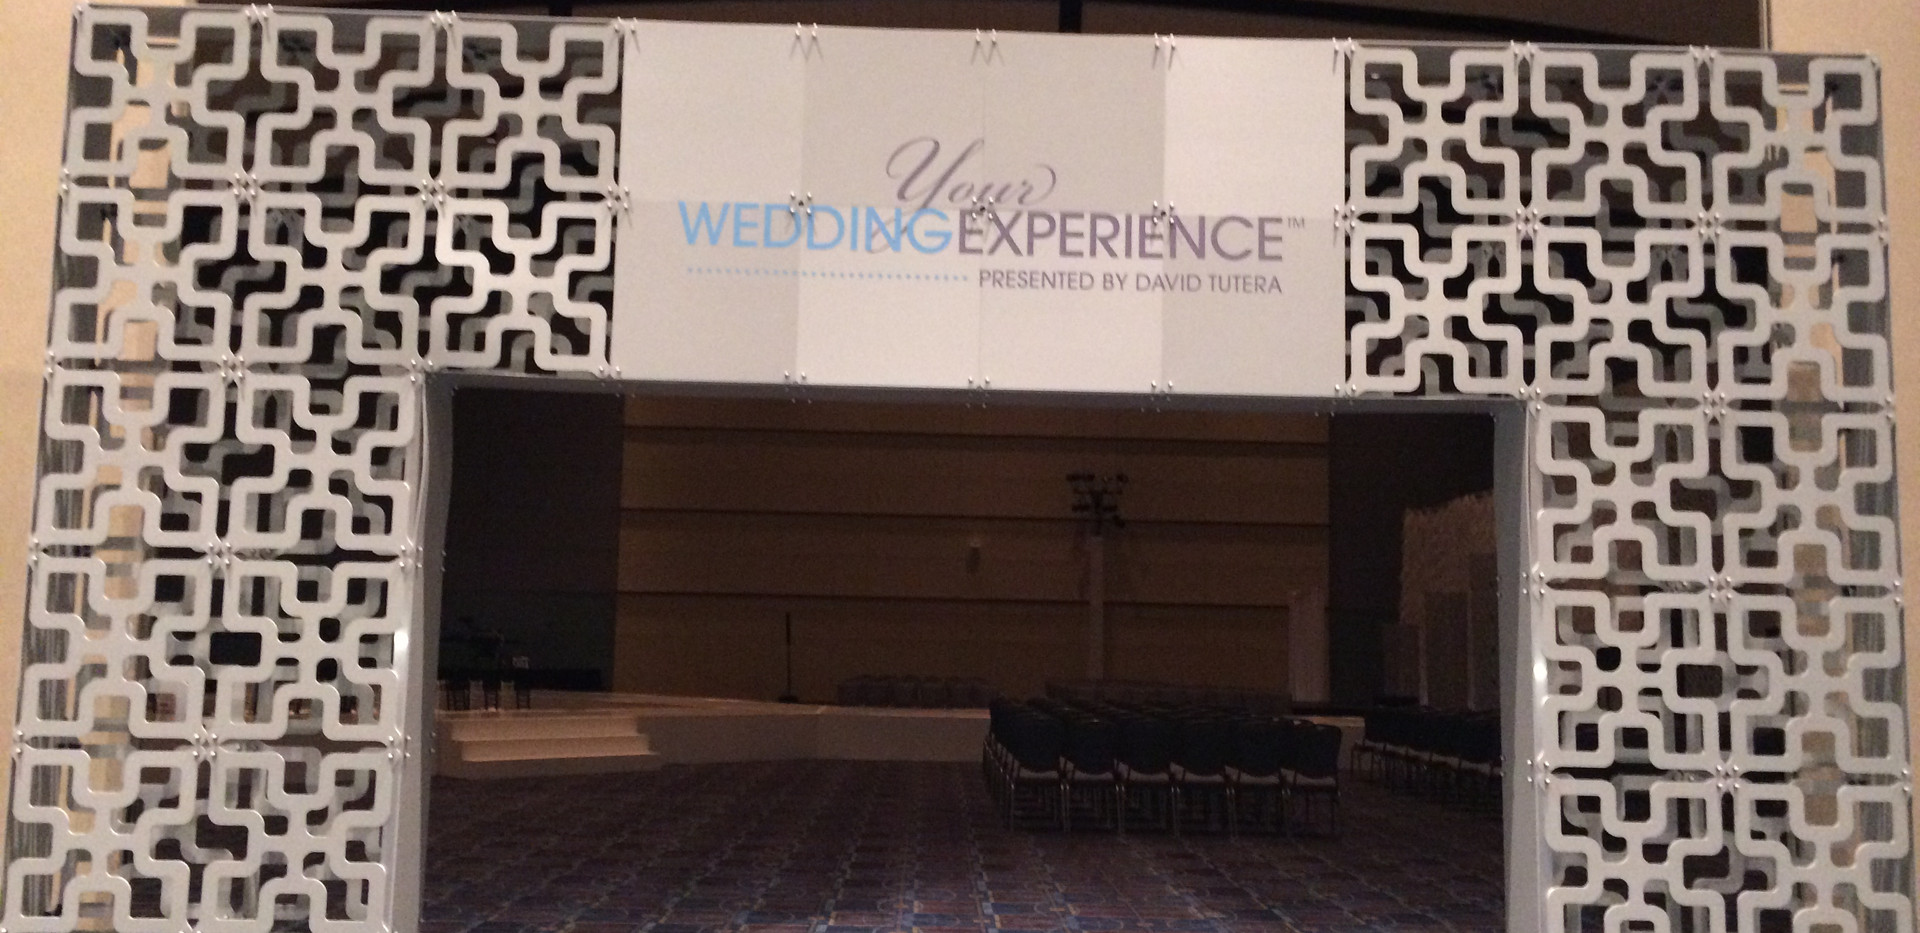 Your Wedding Experience By David Tutera